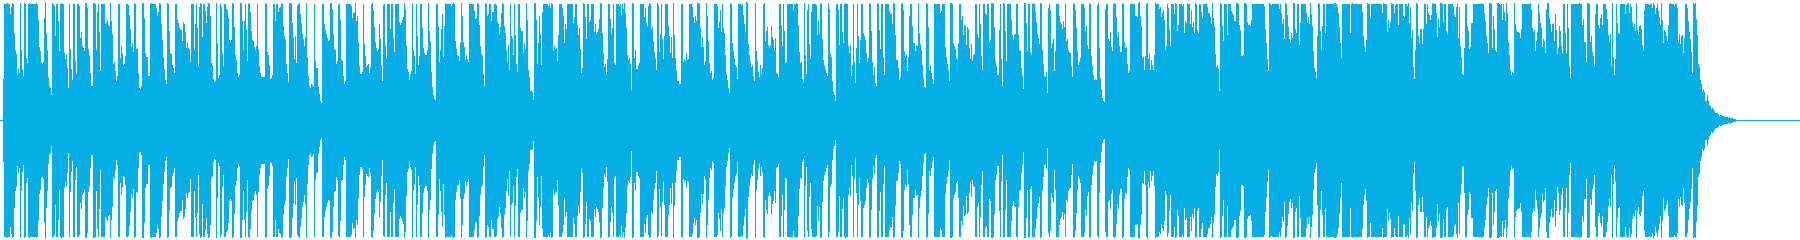 Fairy tale BGM's reproduced waveform